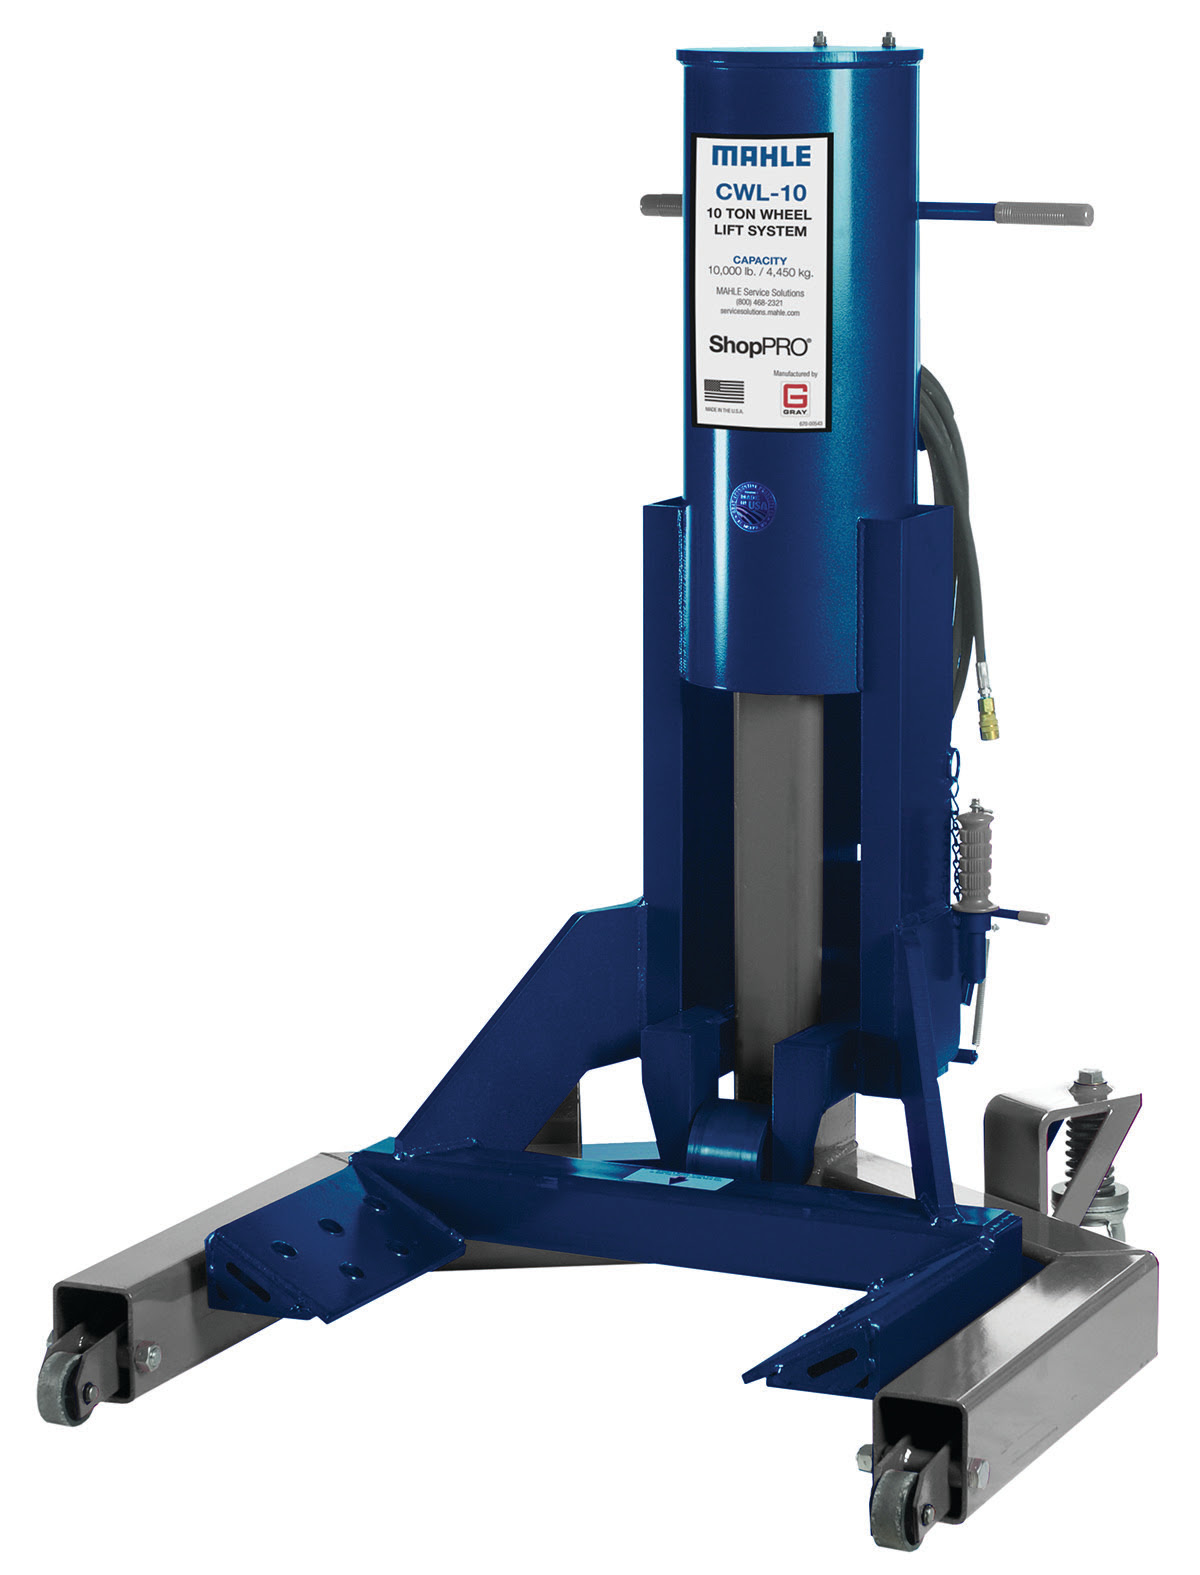 MAHLE Service Solutions Launches Commercial Wheel Lift ShopPRO CWL-10